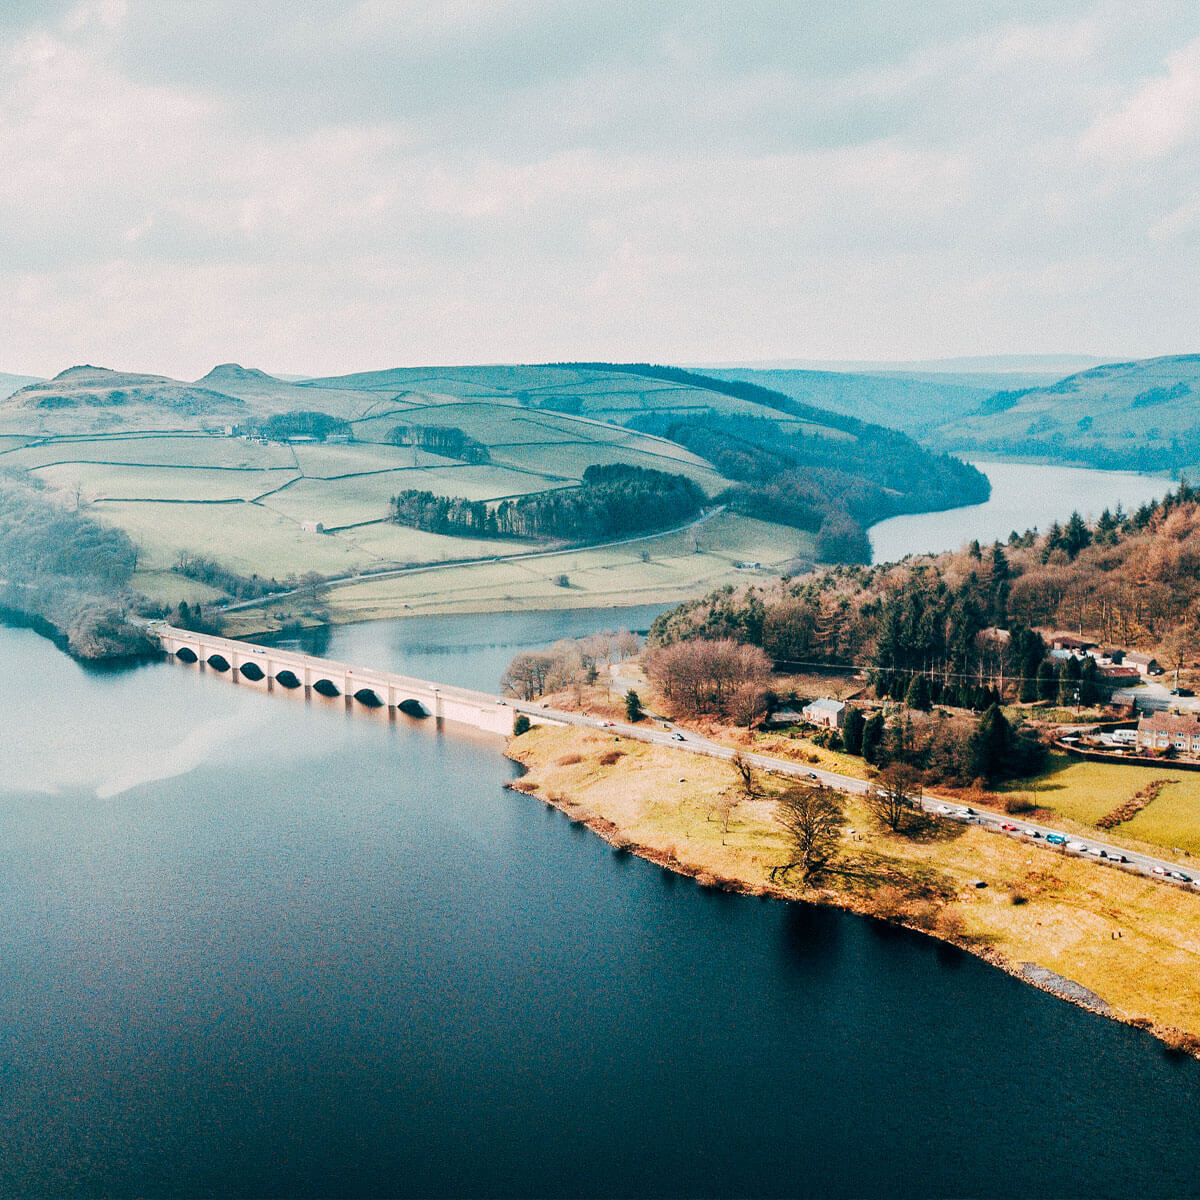 view of the Ladybower & Derwent reservoirs